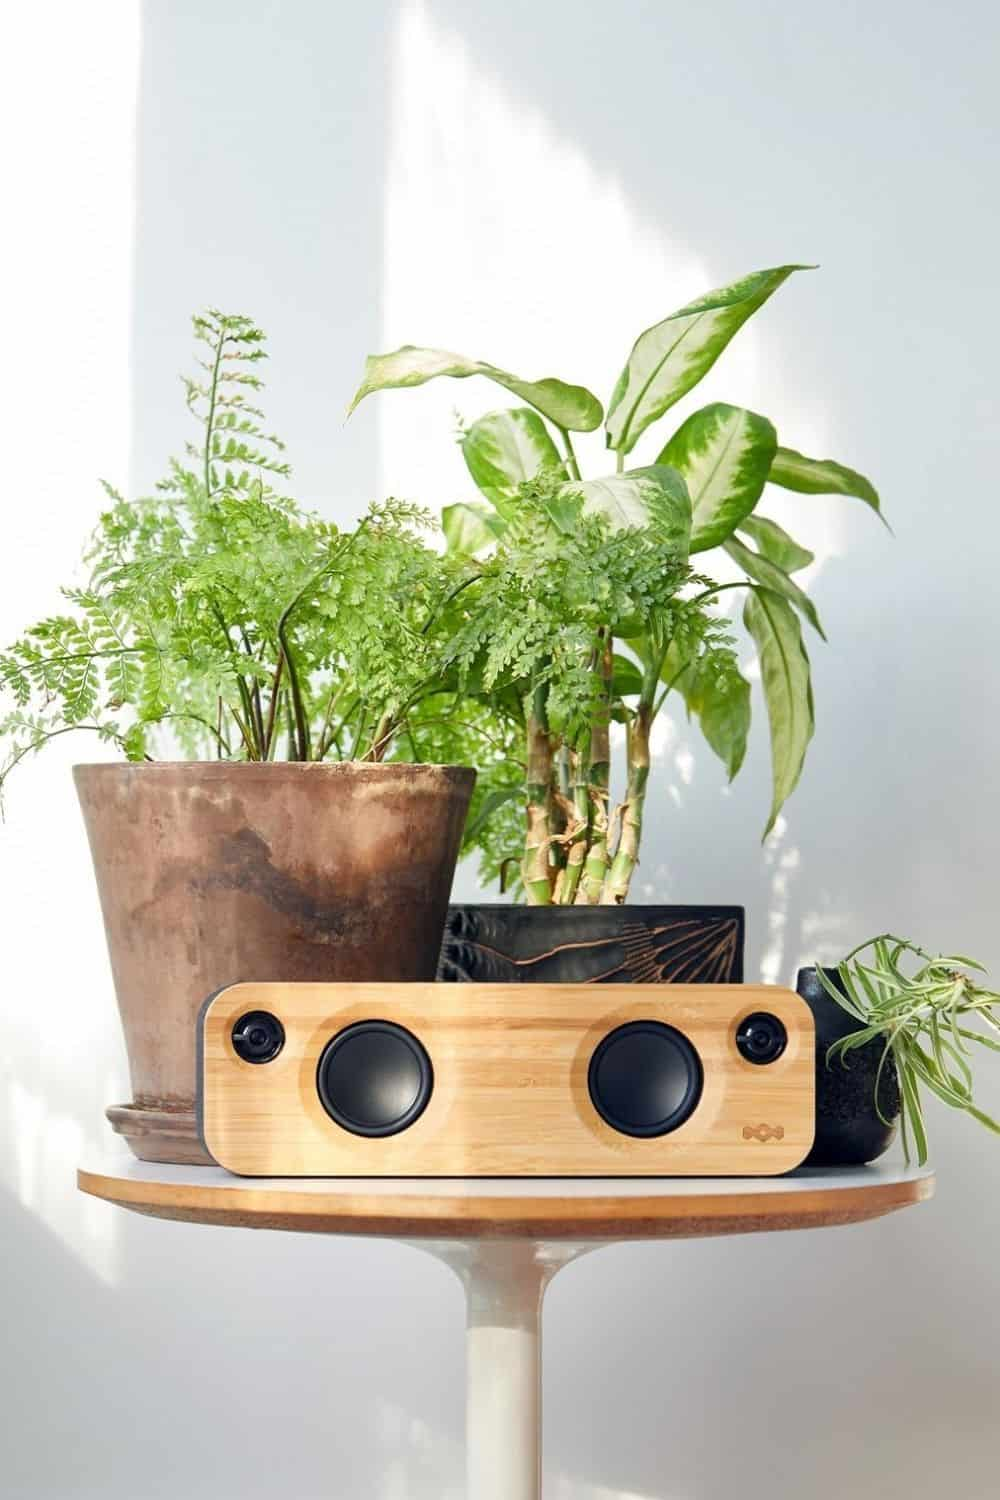 Unlike fashion, finding solutions to the environmental and ethical issues in the technology industry hasn't been as, well, fashionable. So, what can we do as a consumer looking for ethical electronics? Image by House of Marley #ethicalelectronics #ecofriendlyelectronics #sustainablejungle